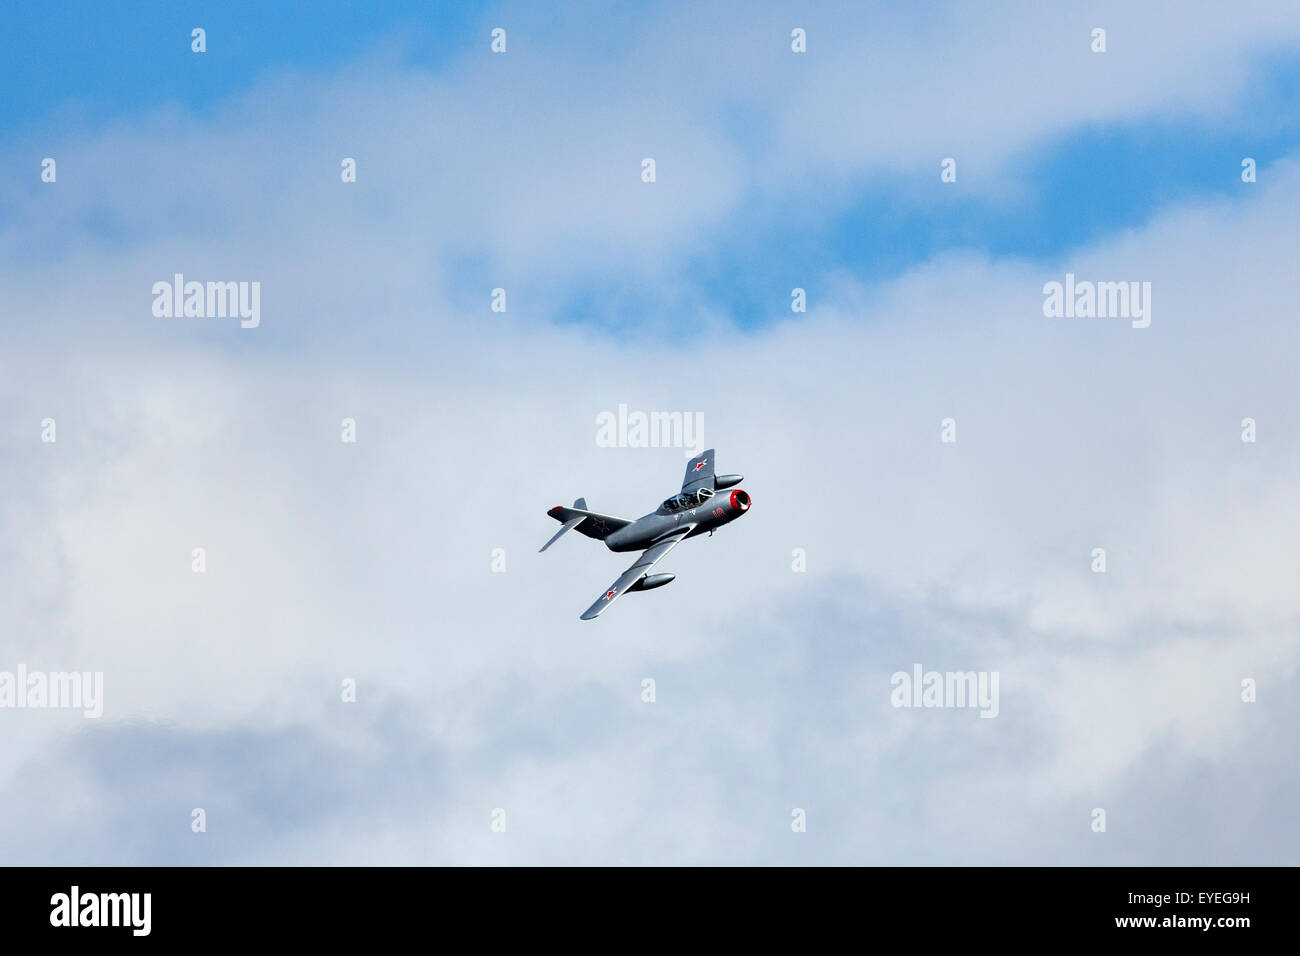 A Mikoyan-Gurevich MiG-15 - one of the first successful swept-wing jet fighters, and achieved fame in the skies - Stock Image